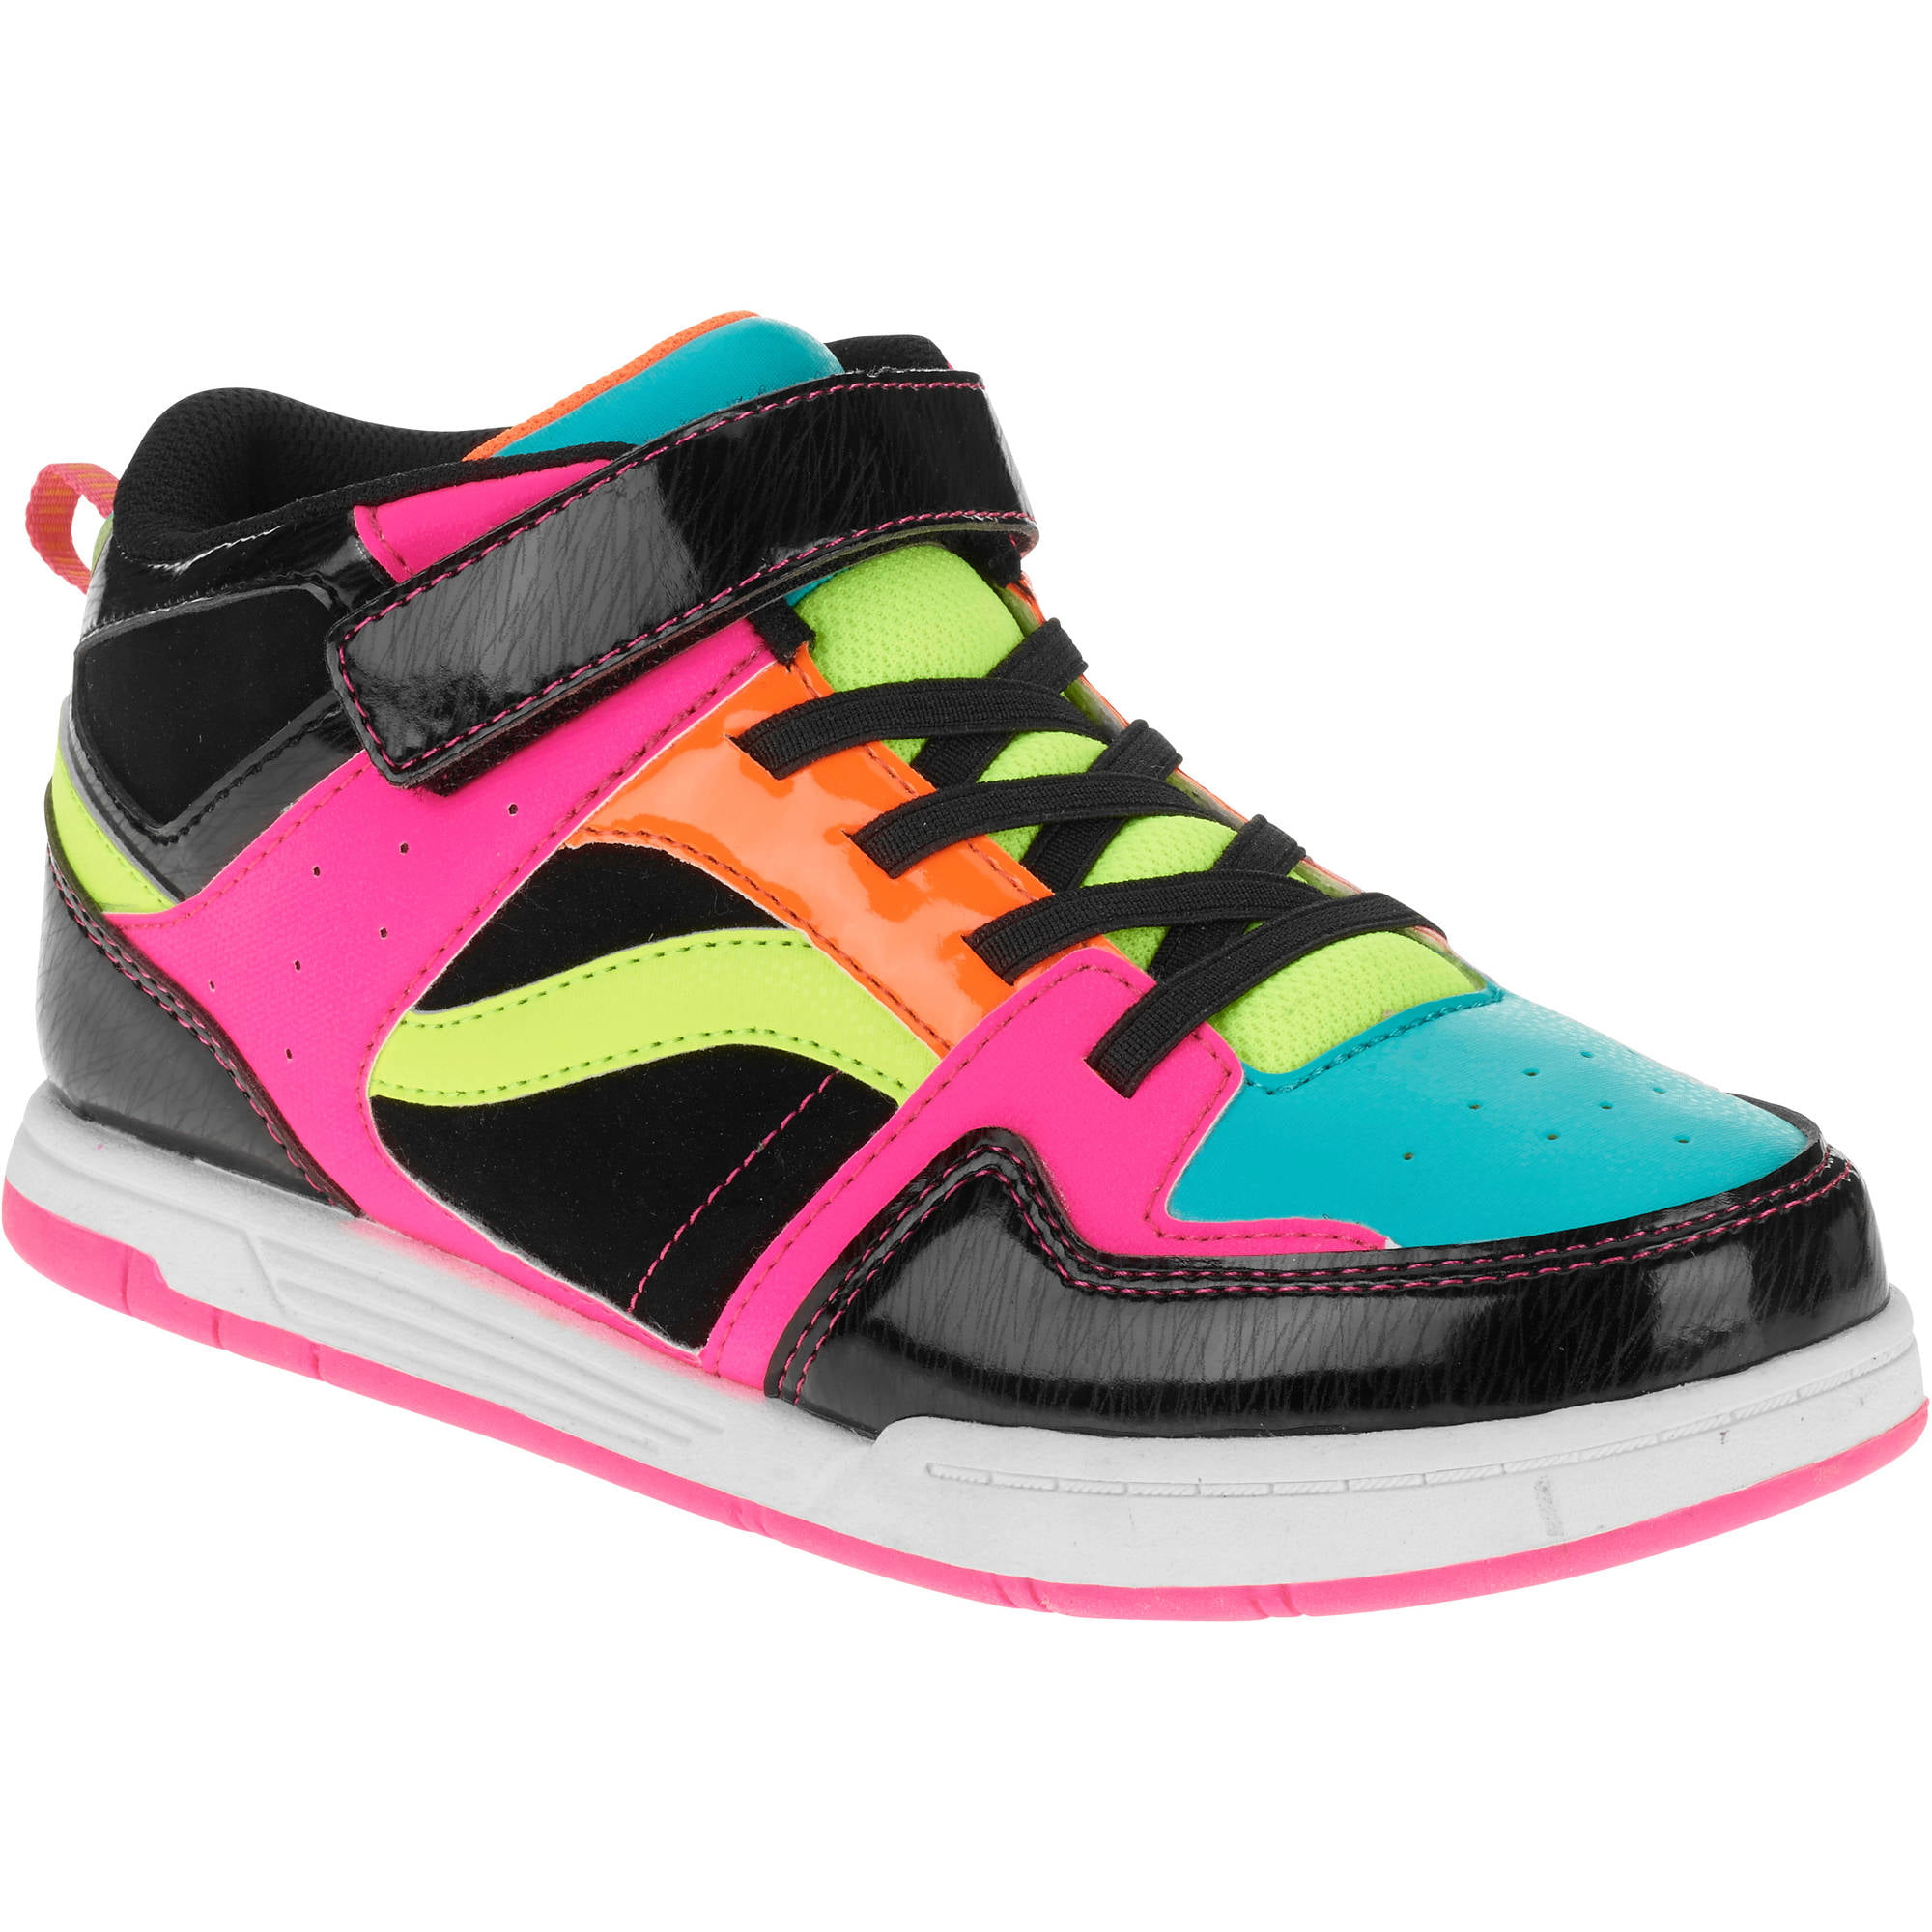 new nike shoes for girls without shoelaces walmart photo 900301